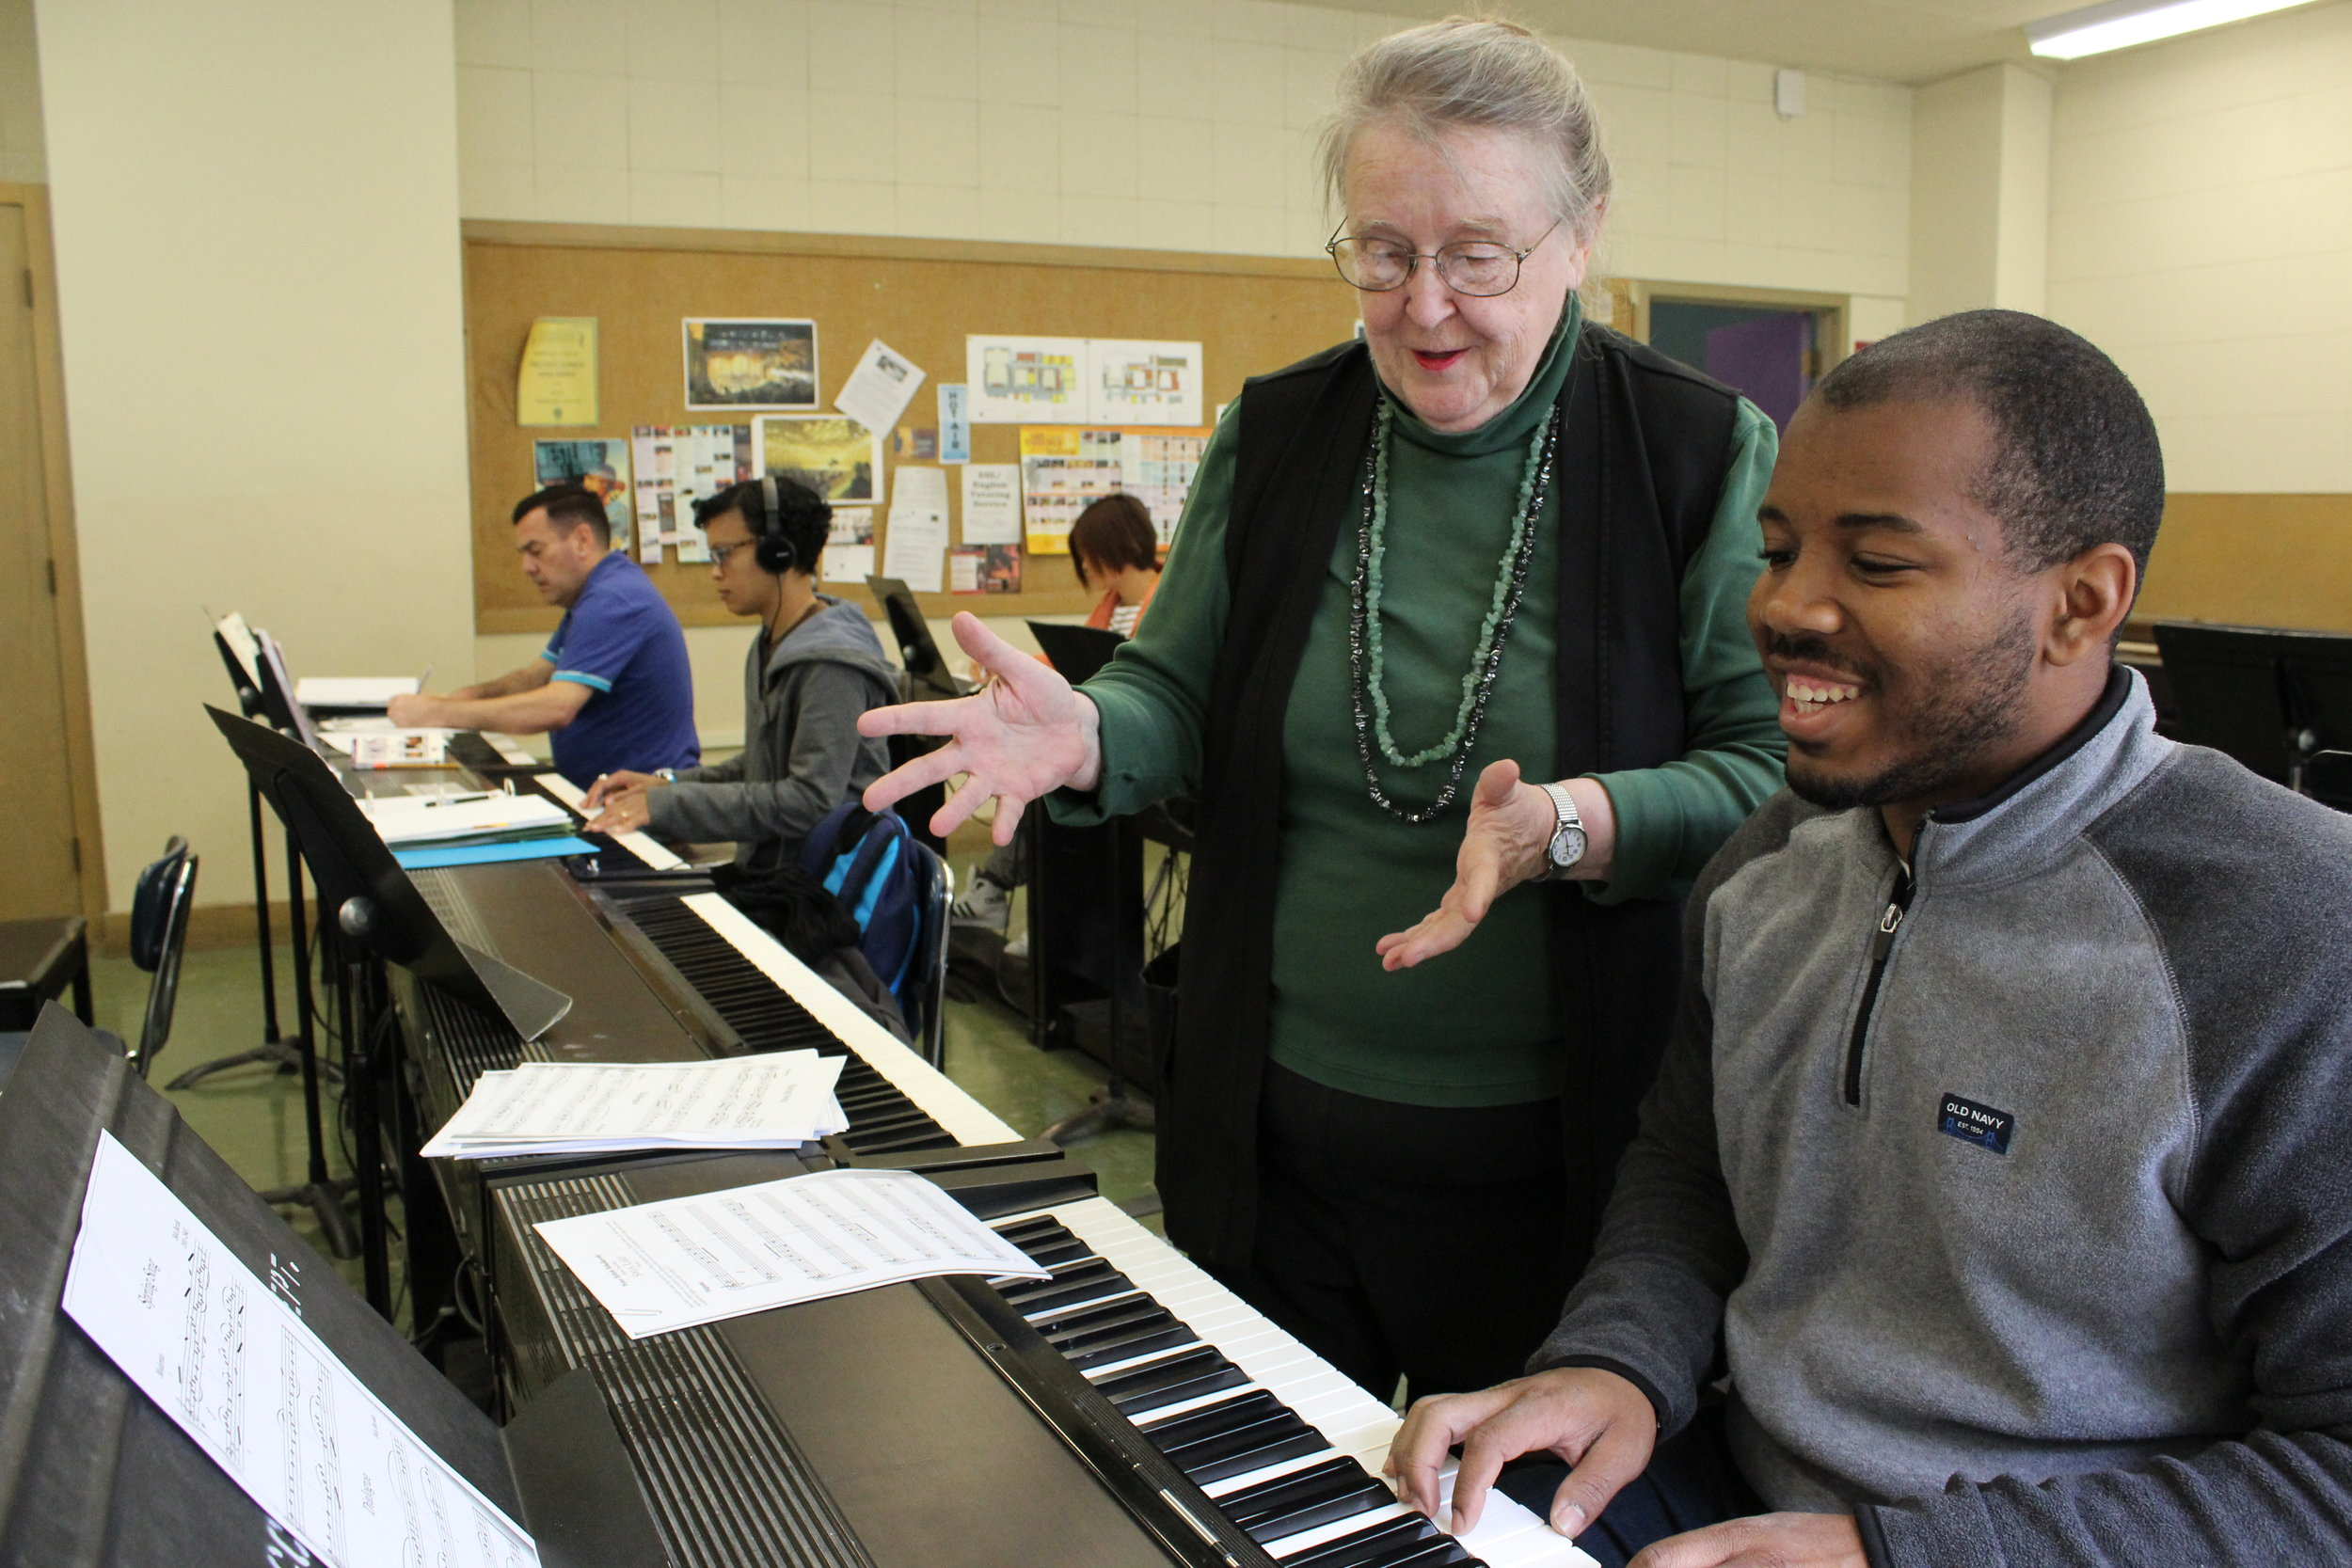 Madeline Mueller instructs a piano student during a lesson. April 2016